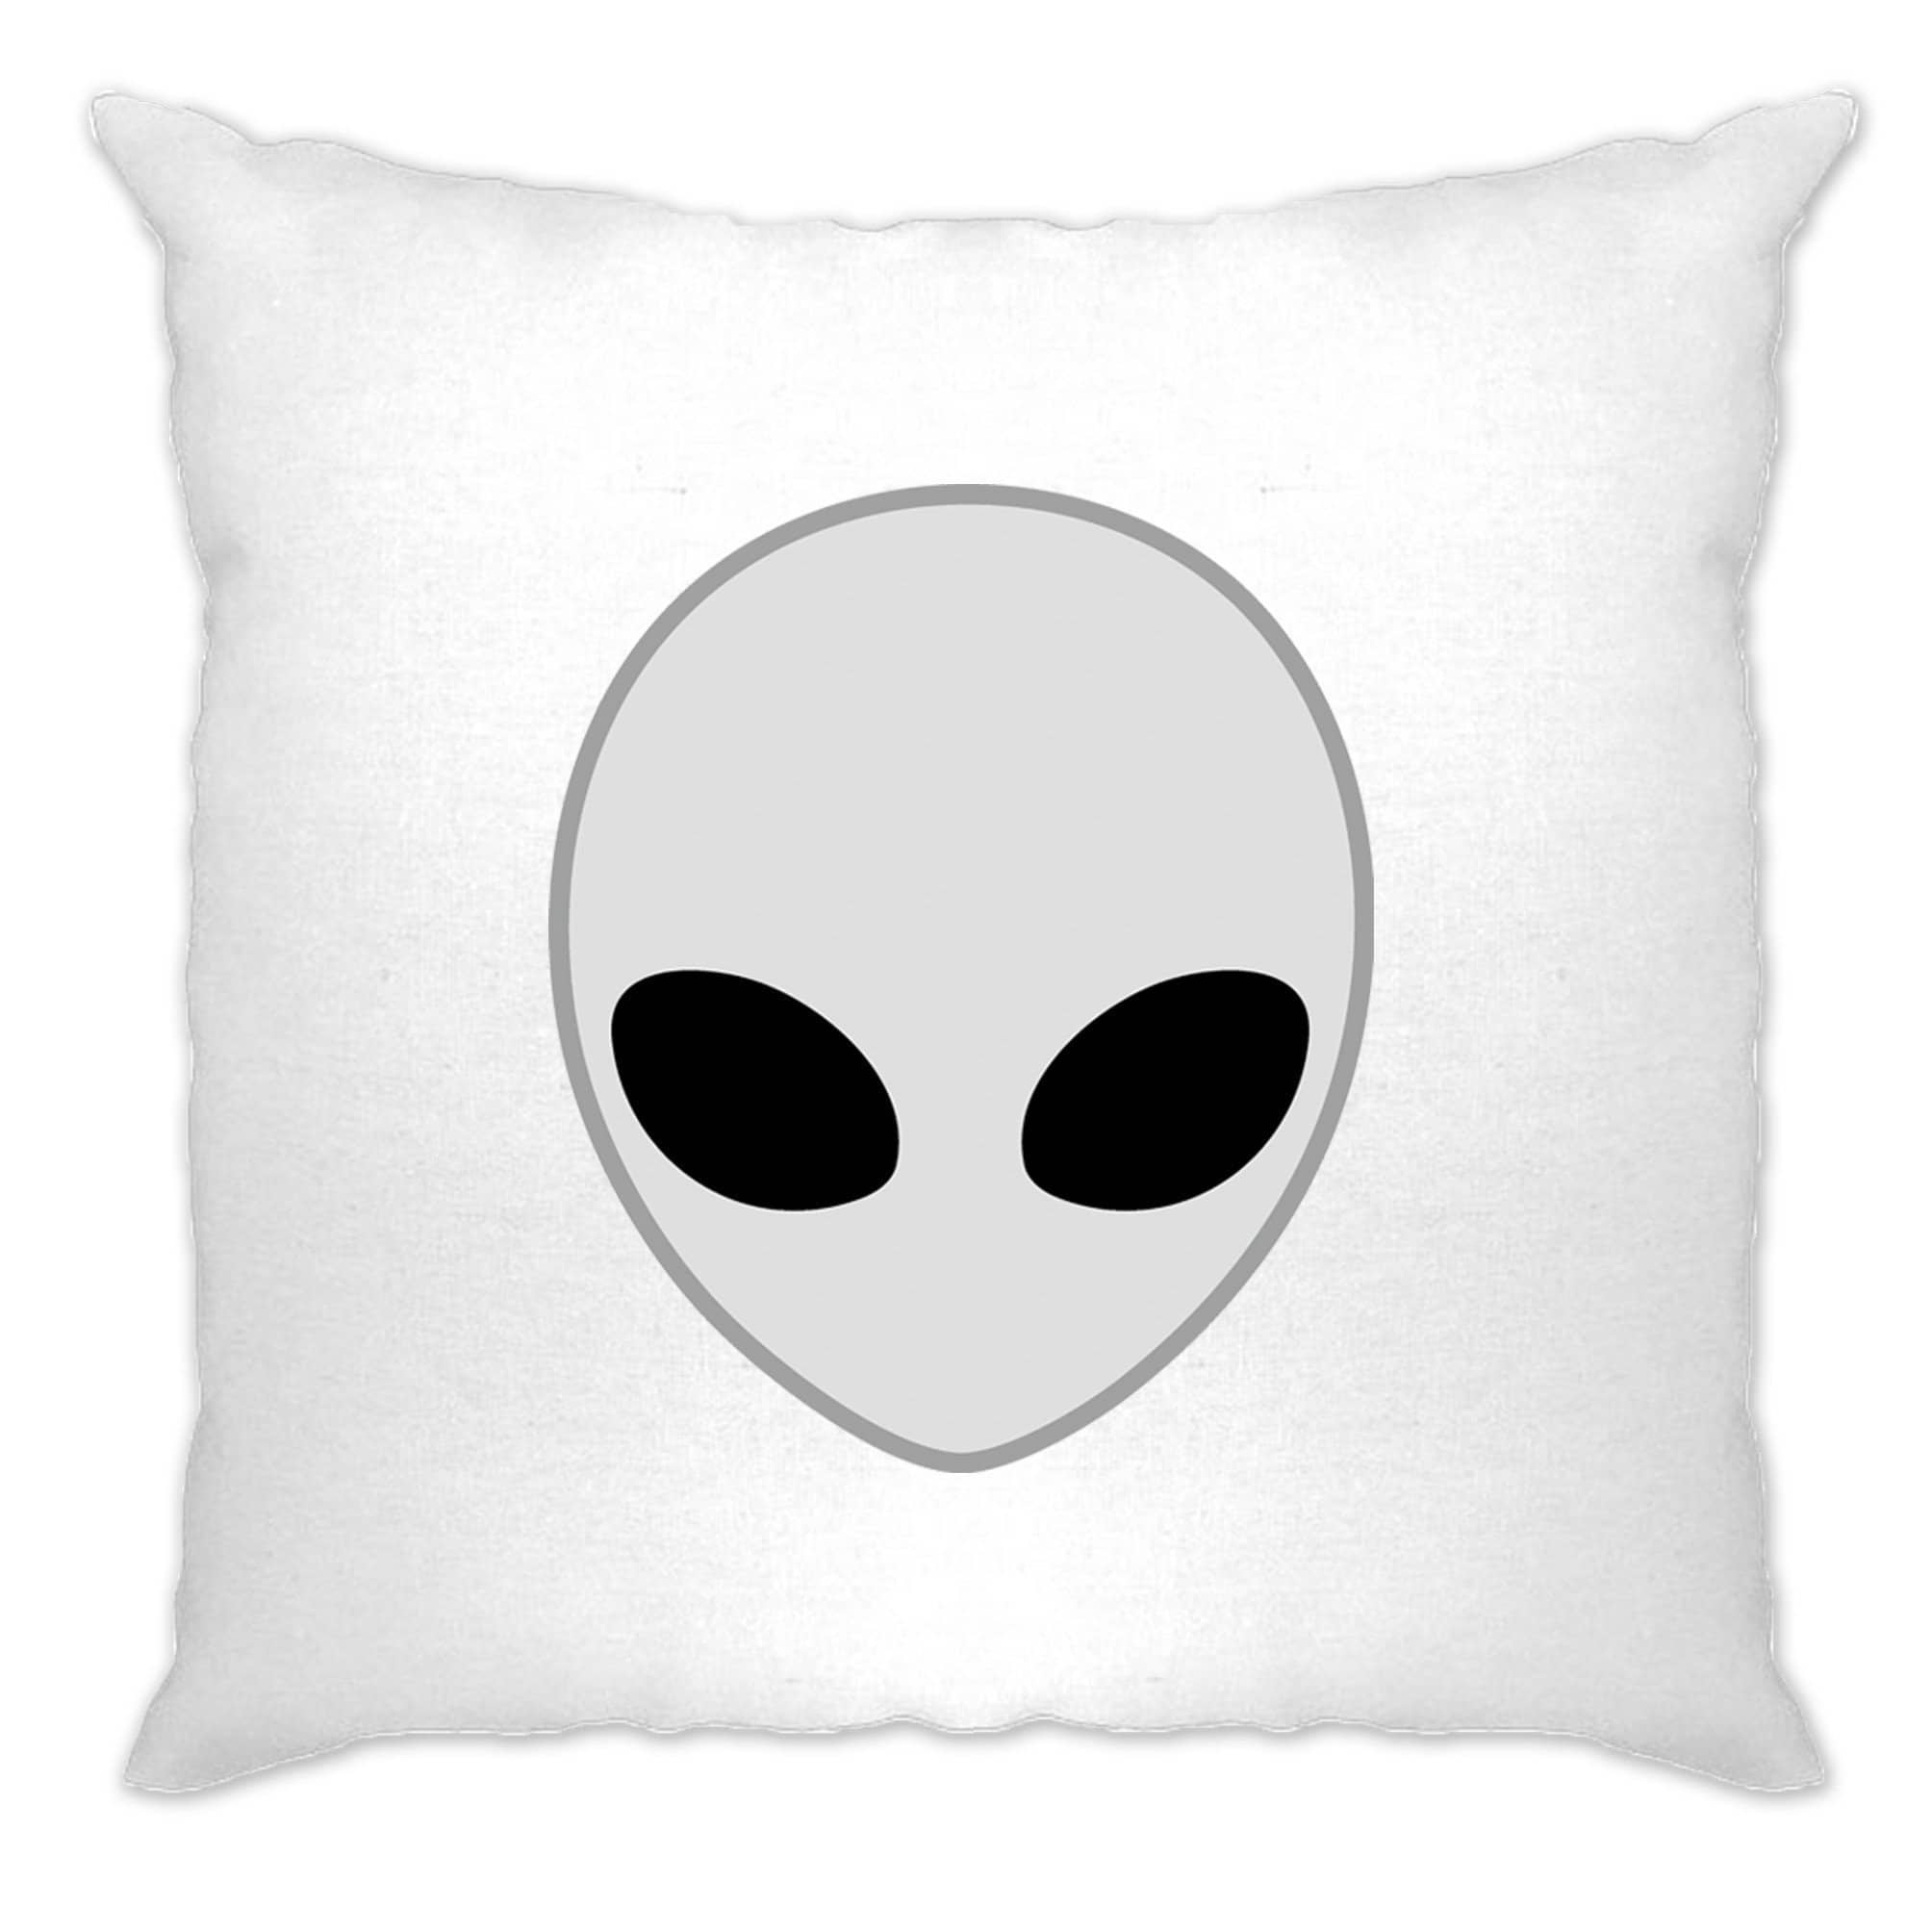 Alien Cushion Cover Nerdy Iconic Sci Fi Head Design